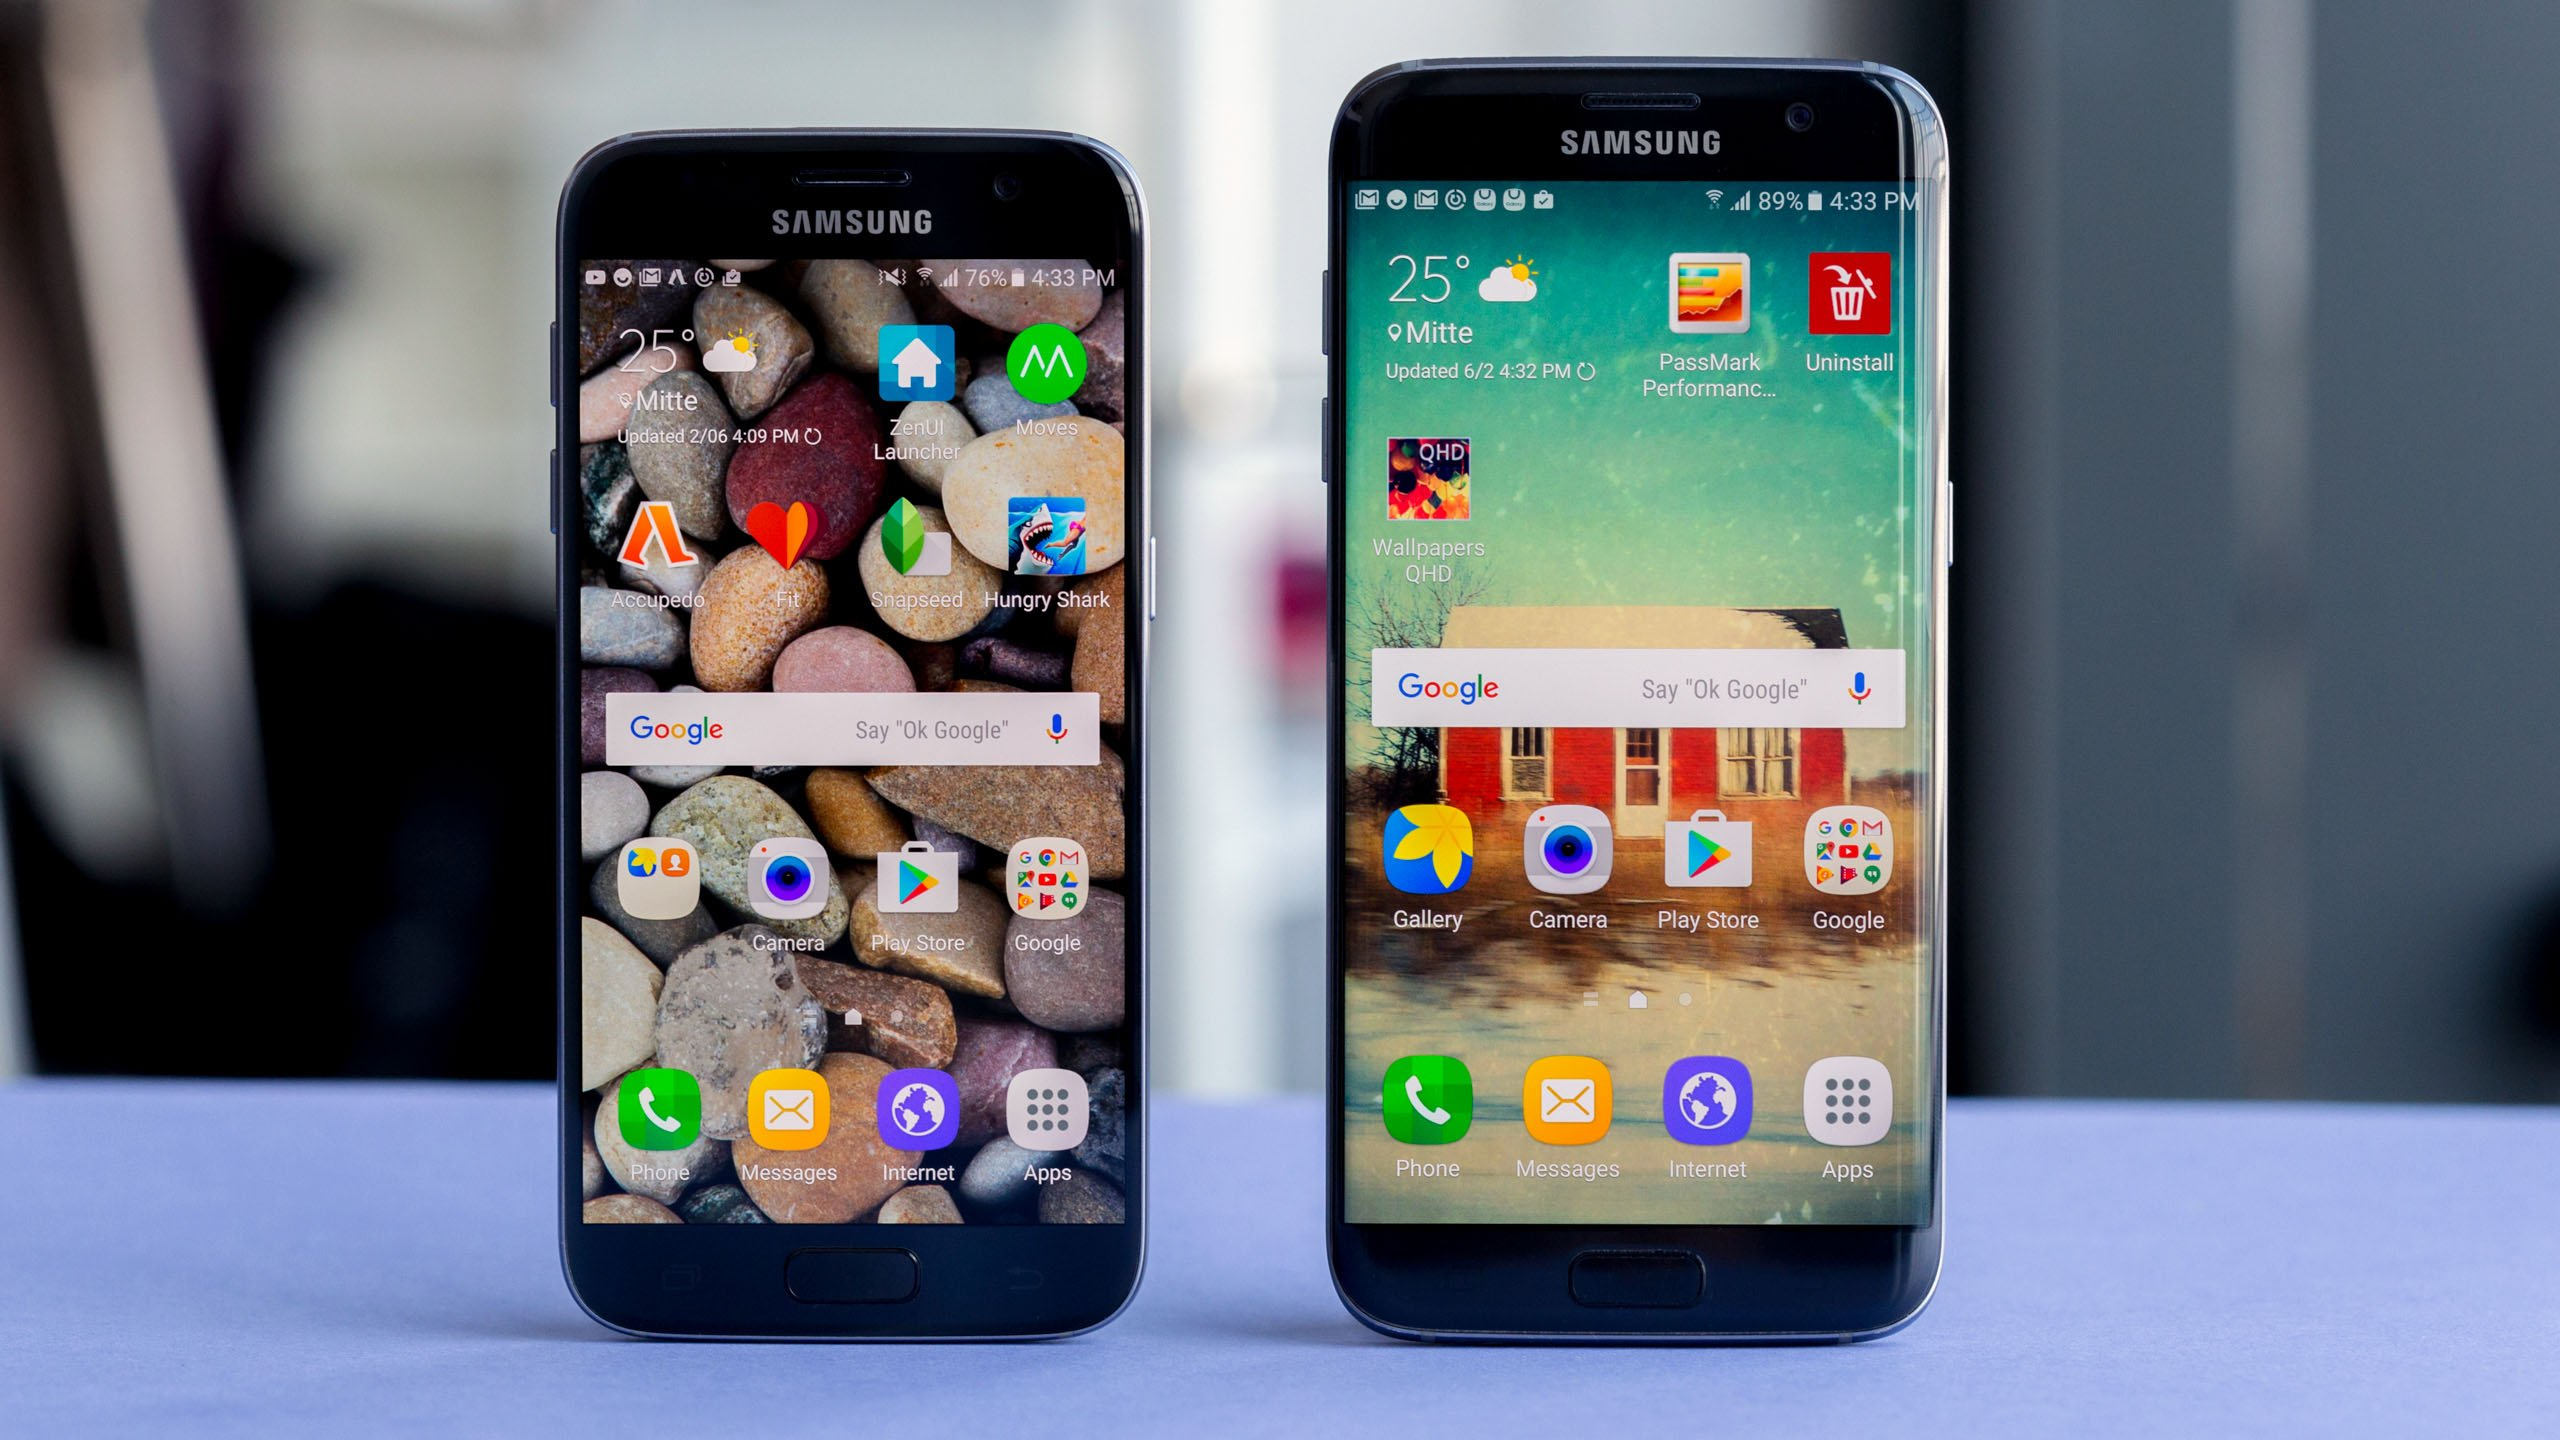 Samsung Galaxy S7 Vs Galaxy S7 Edge Comparison Androidpit